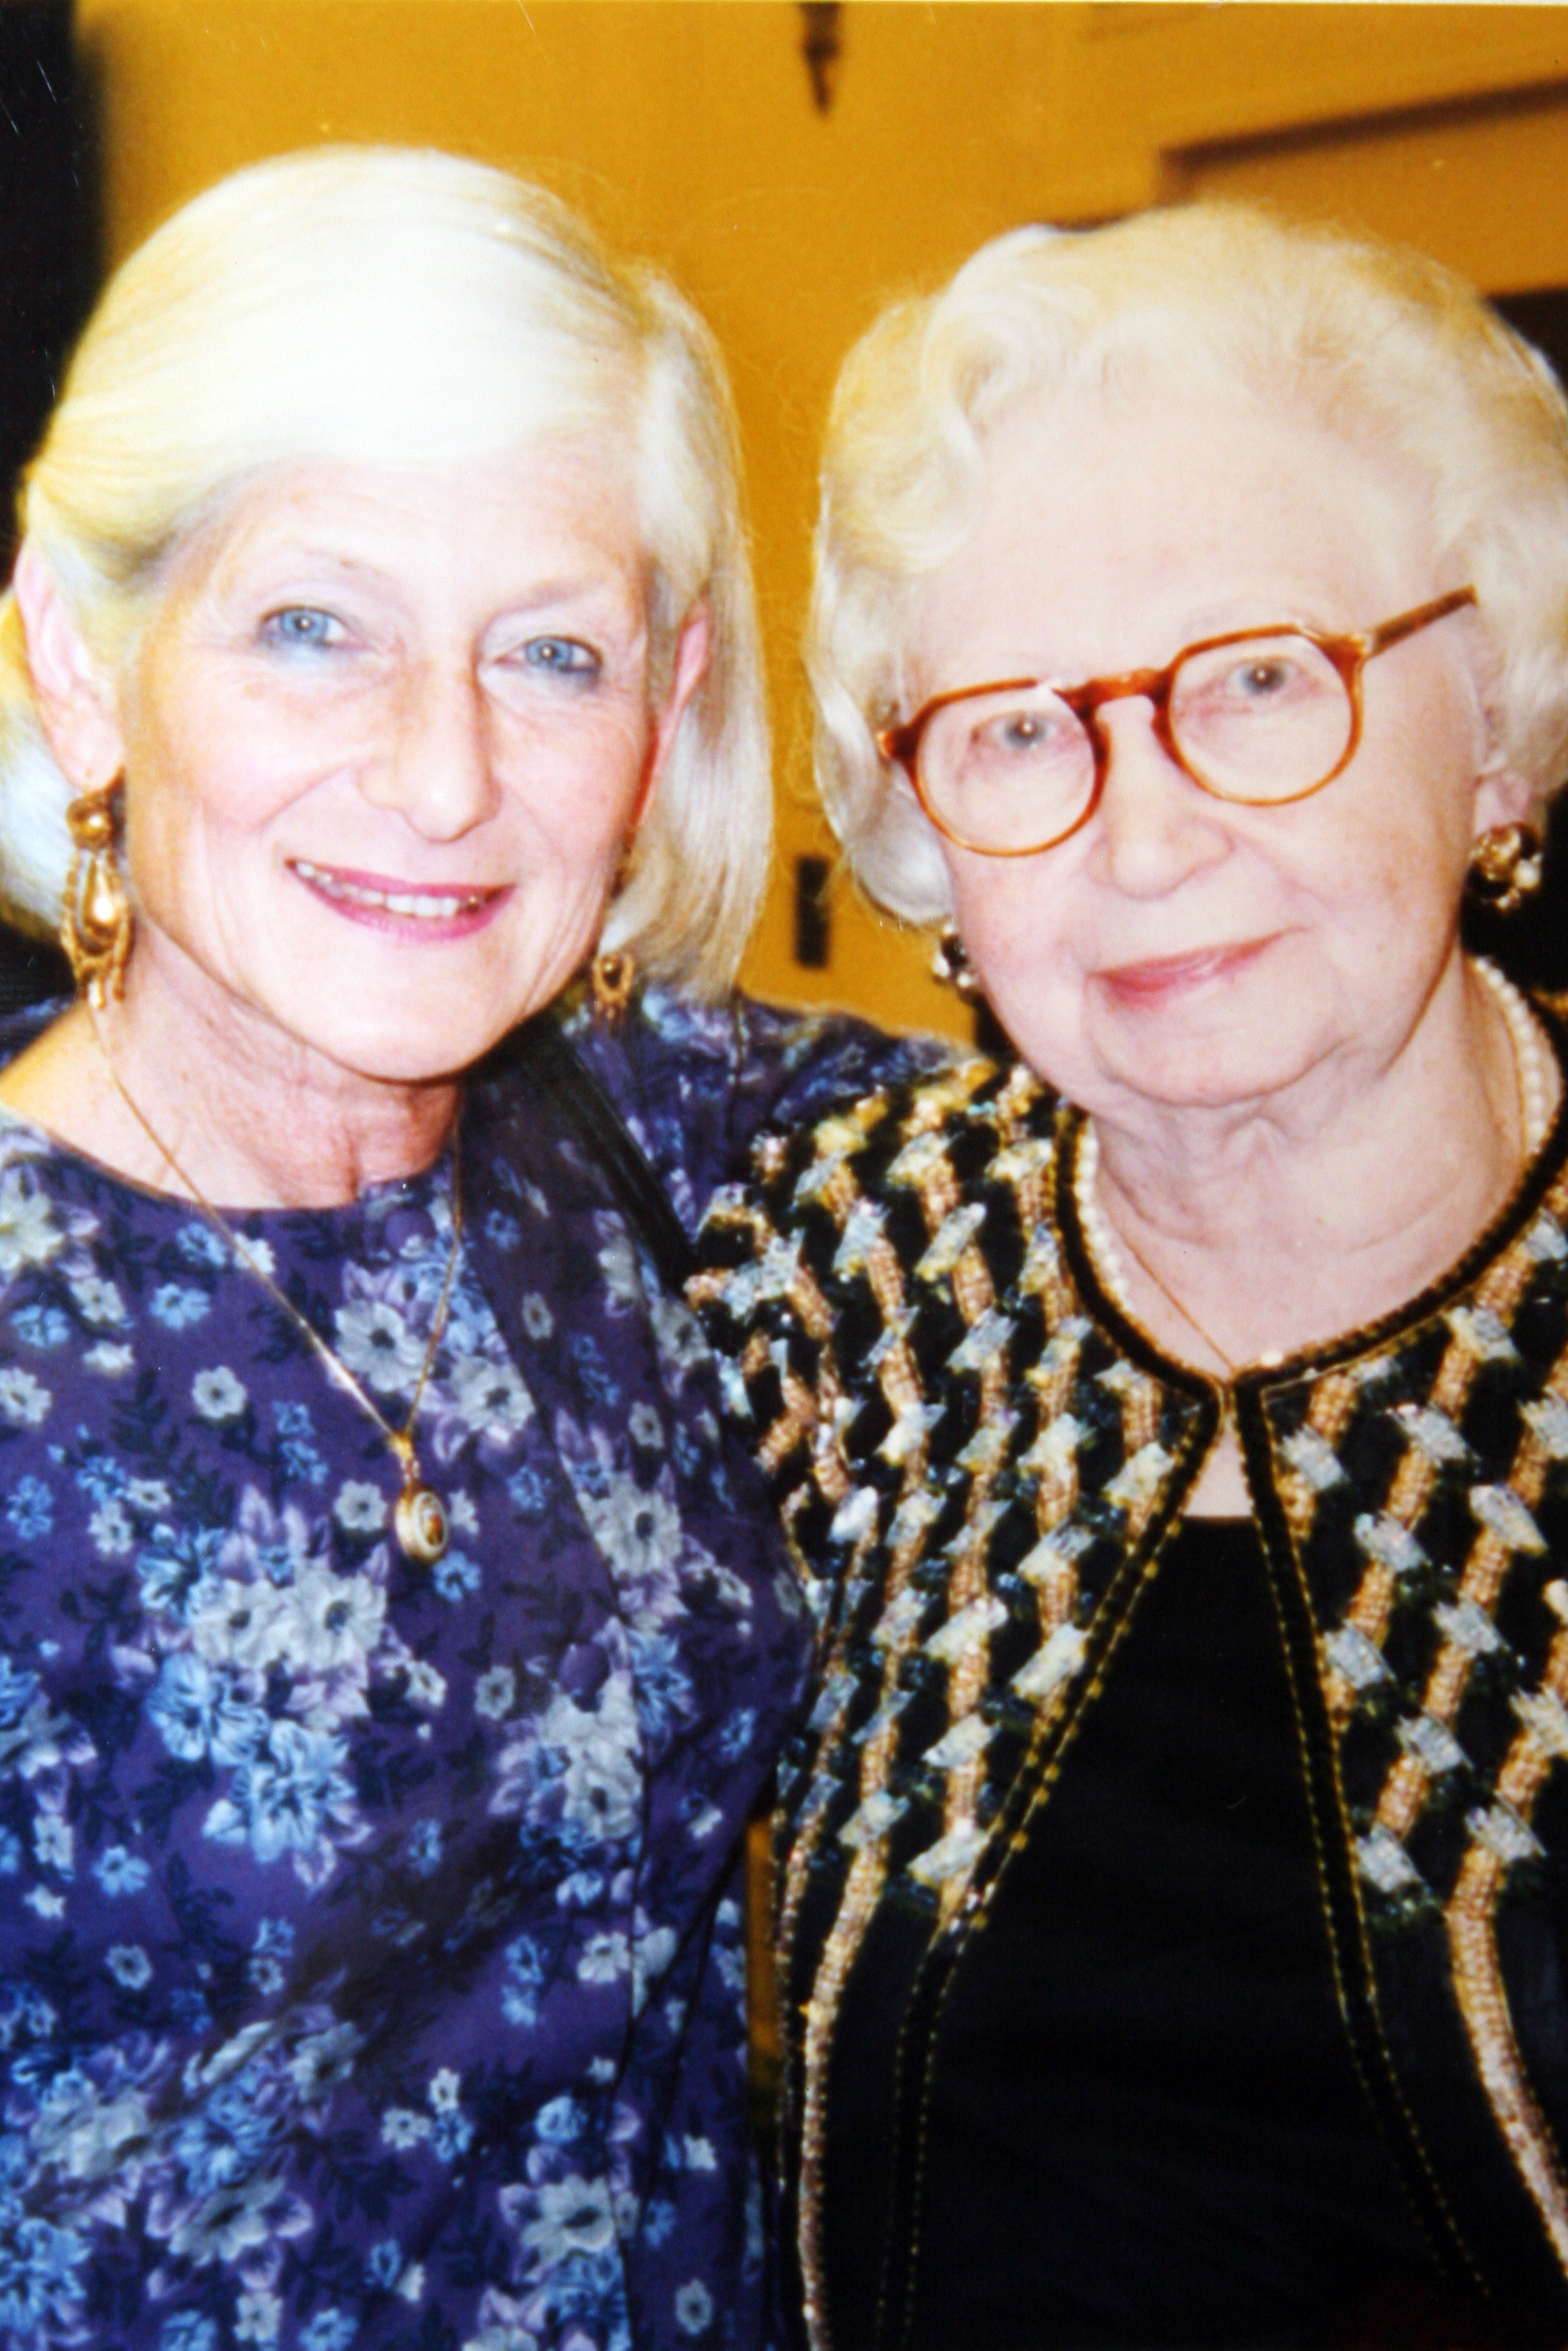 Irene with 1994 medal recipient Miep Gies who helped hide Anne Frank's family during World War II.